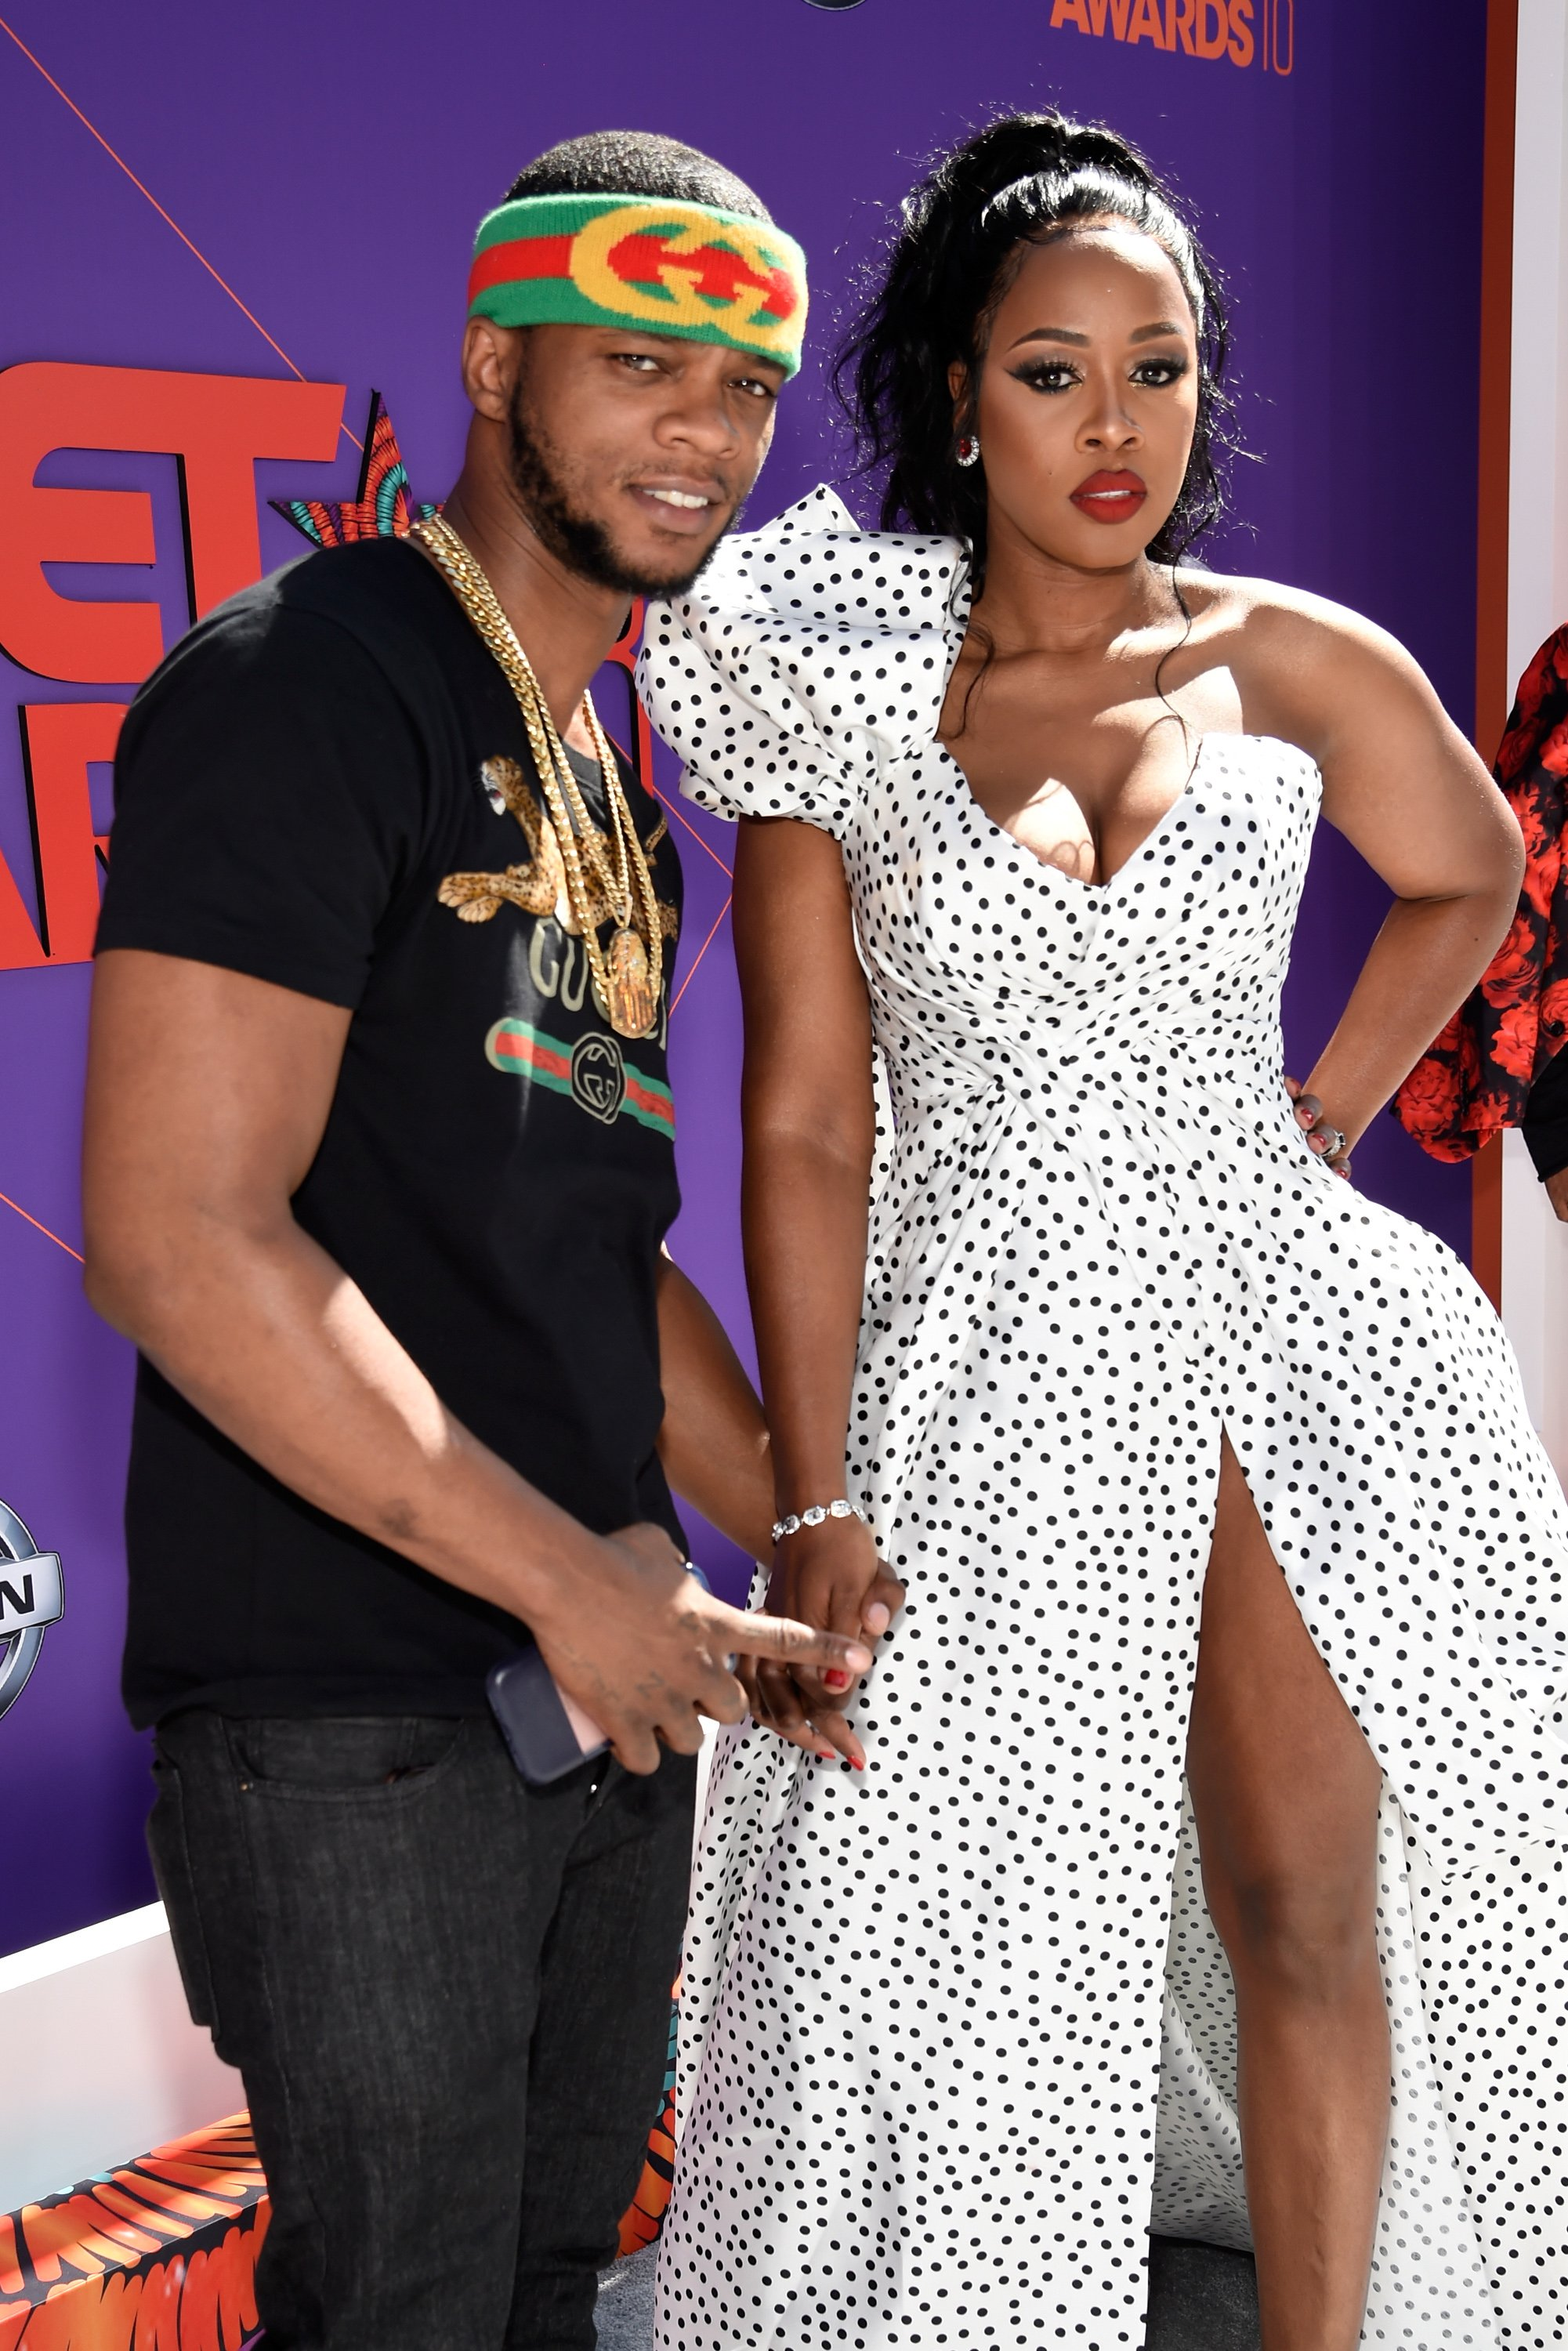 Papoose and Remy Ma at the red carpet of the 2018 BET Awards. | Photo: Getty Images